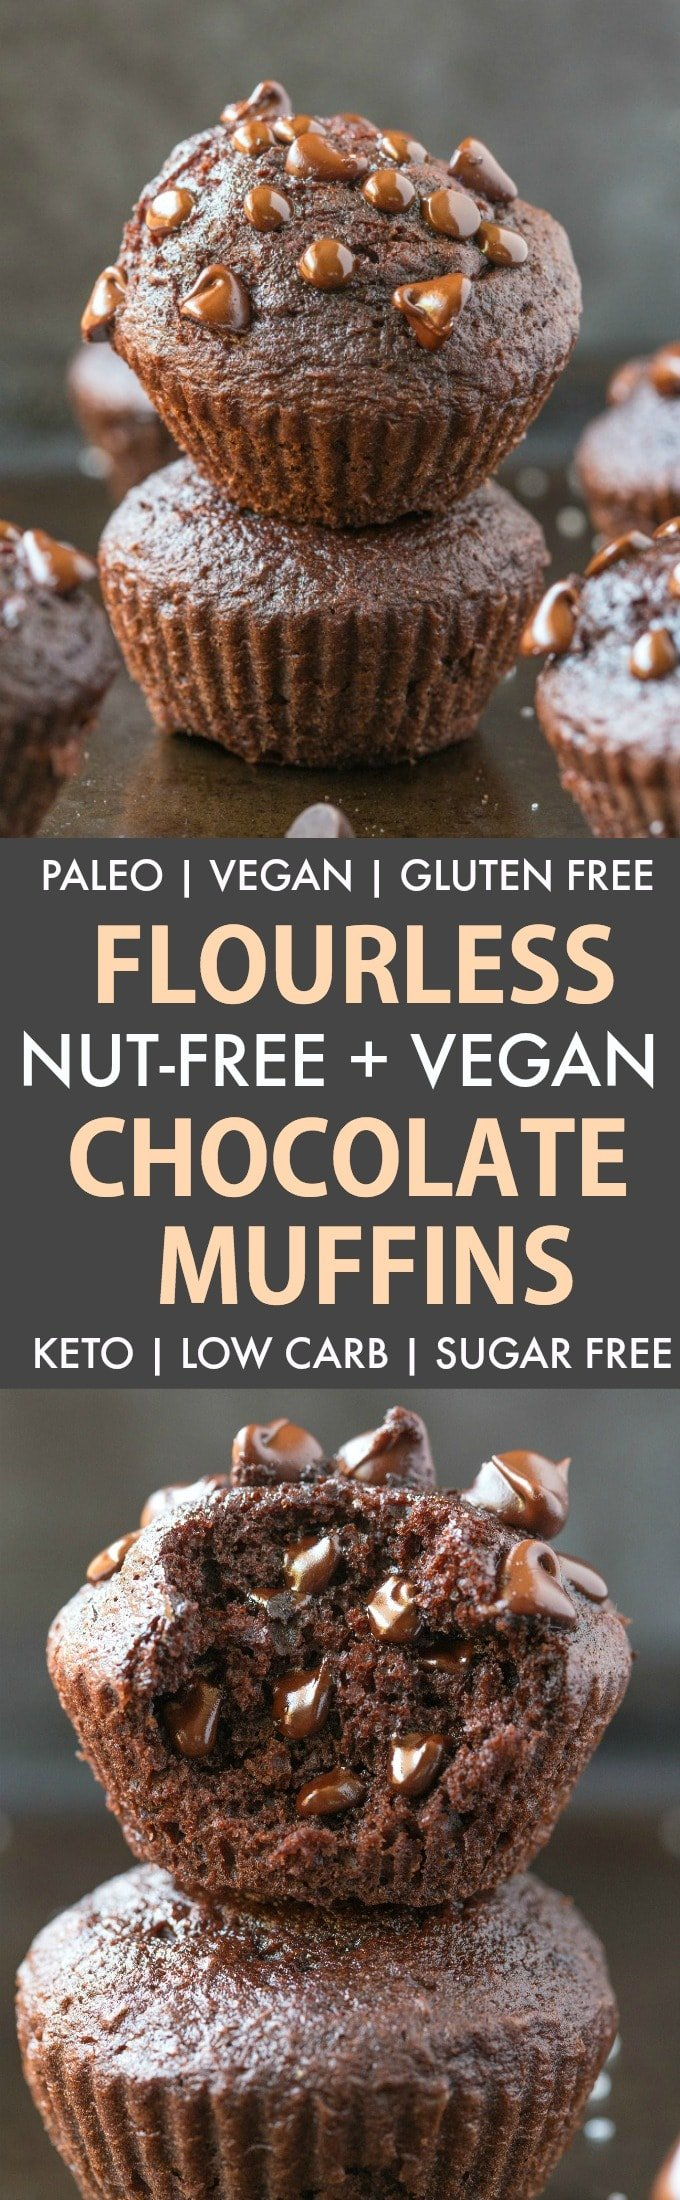 A collage of Easy Flourless Gluten Free Vegan Blender Chocolate Muffins covered in melted chocolate chips.